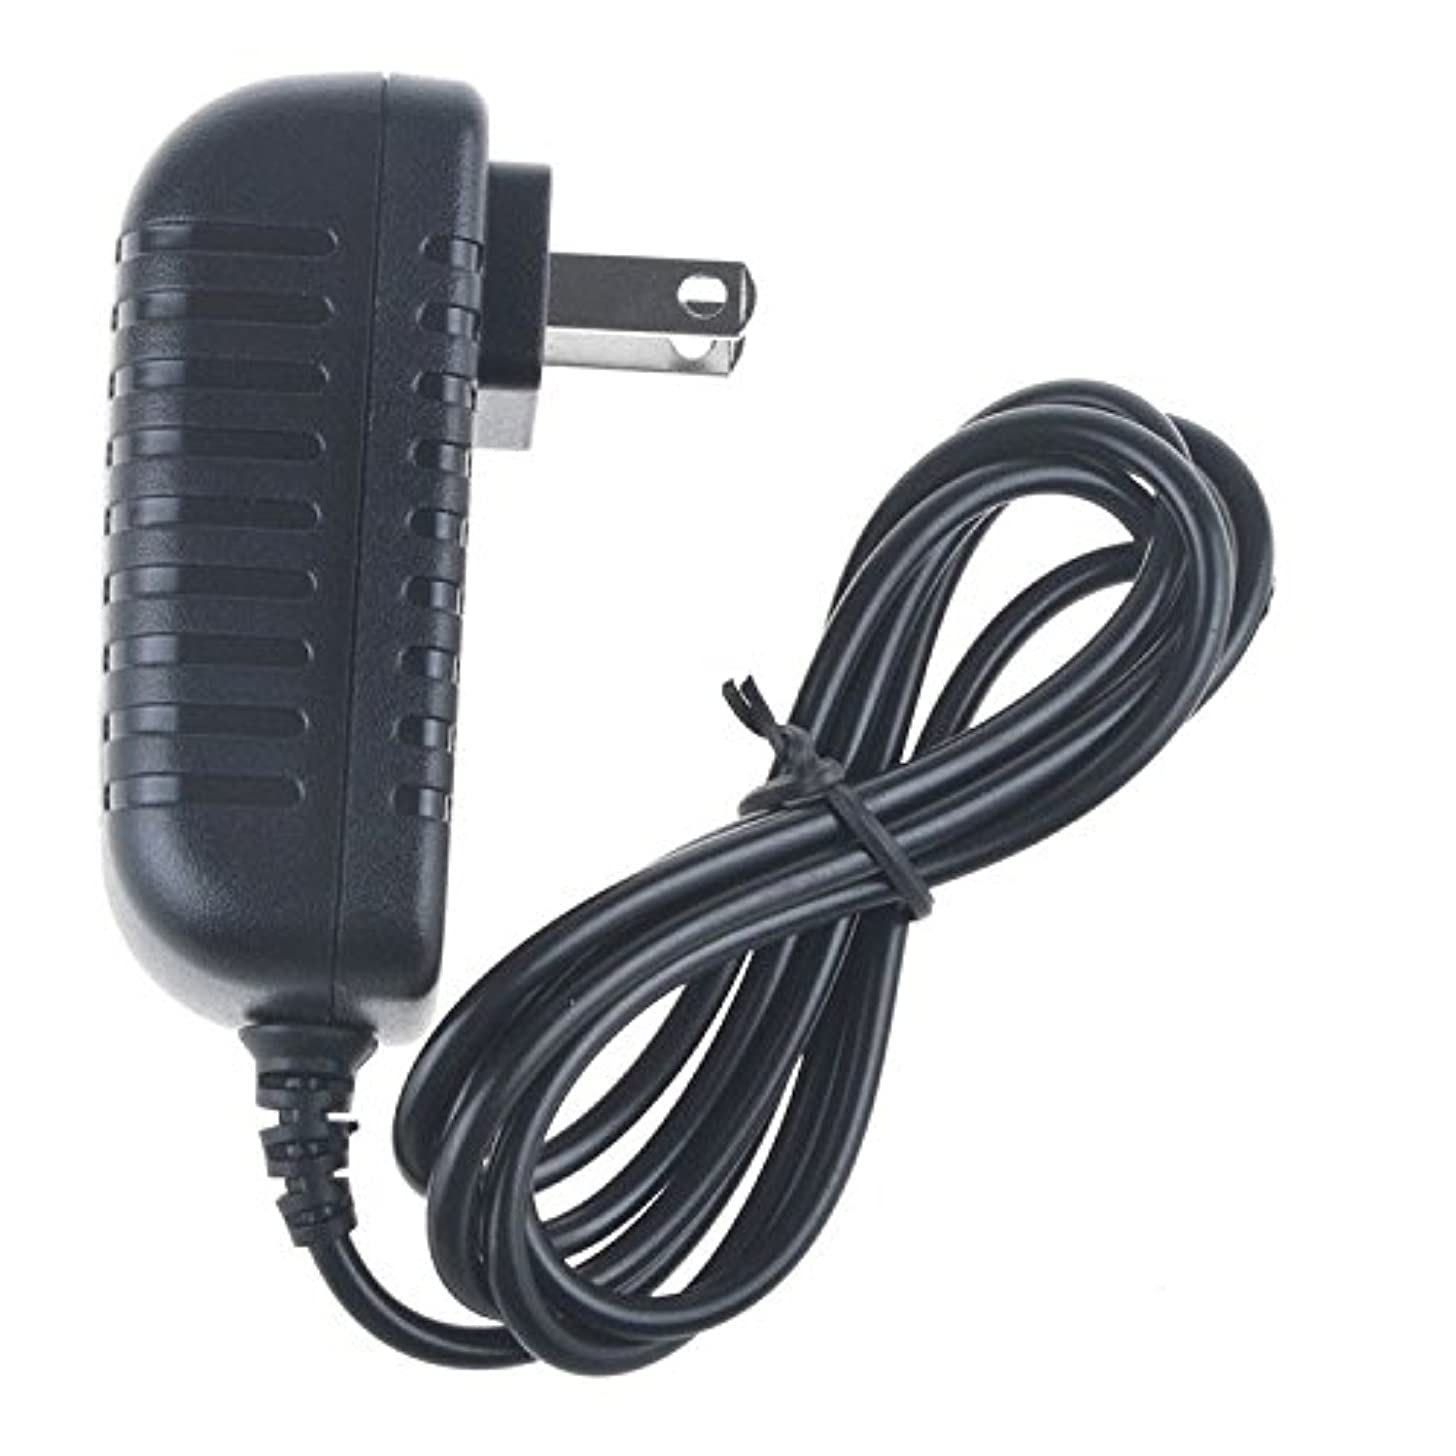 PK Power 13.5V AC/DC Adapter for Sennheiser Set 840 Set 840S TR840 Wireless Stereo TV Headphone Listening System 13.5VDC Power Supply Cord Cable PS Wall Home Charger Mains PSU(Not 9VDC)